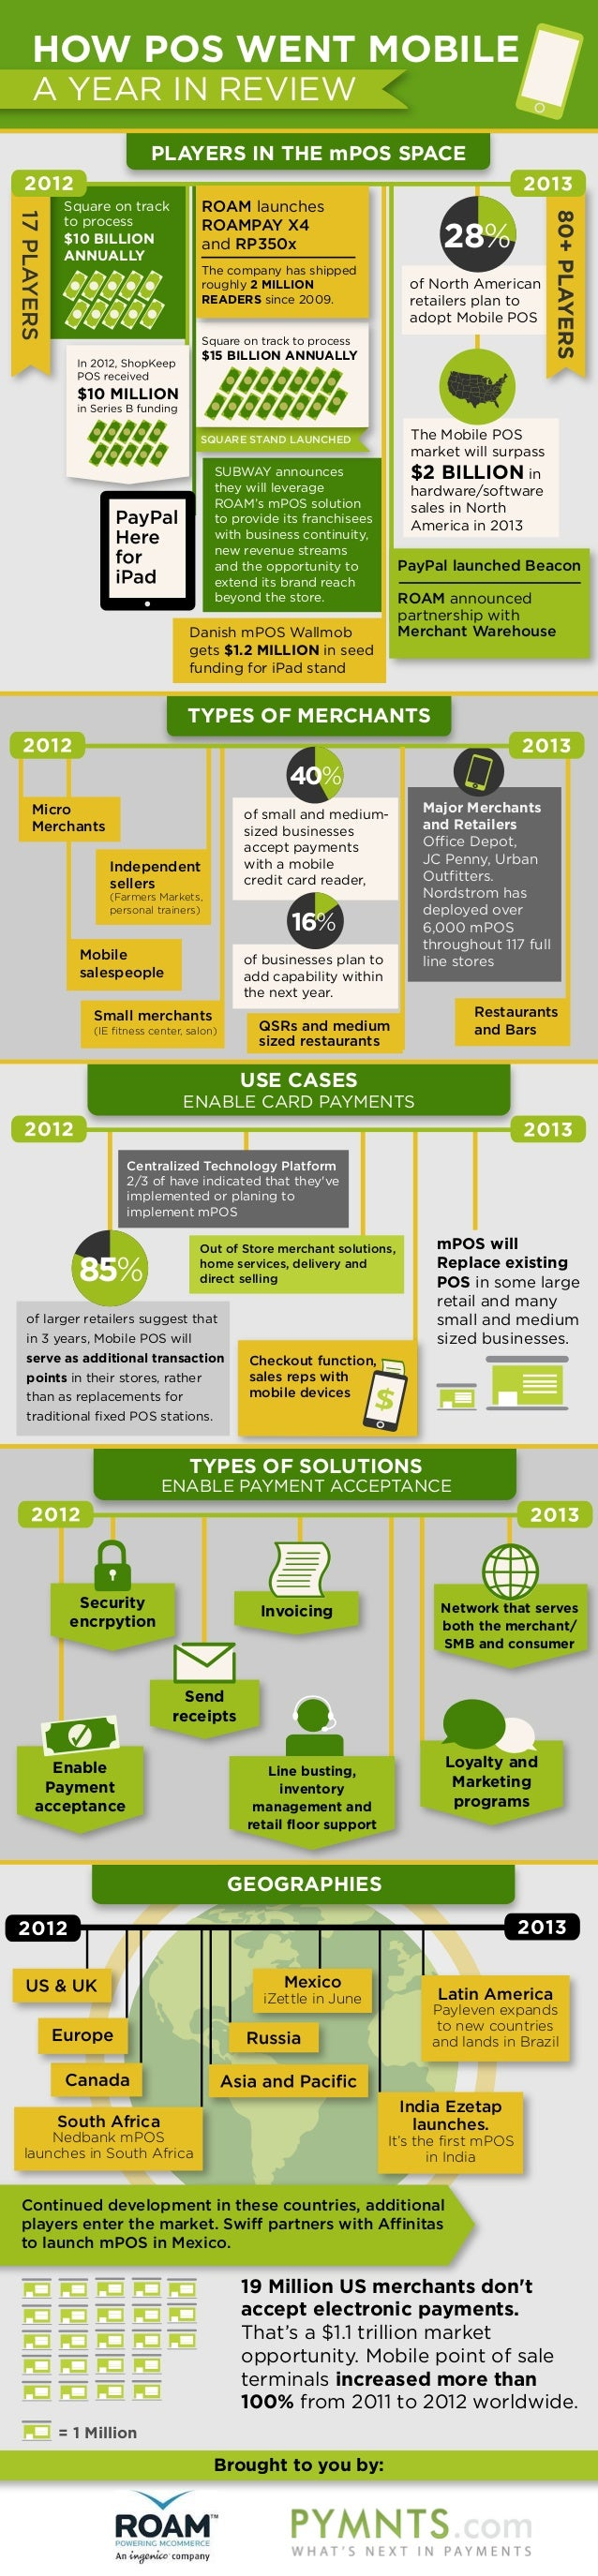 How POS Went Mobile - MPOS a Year in Review